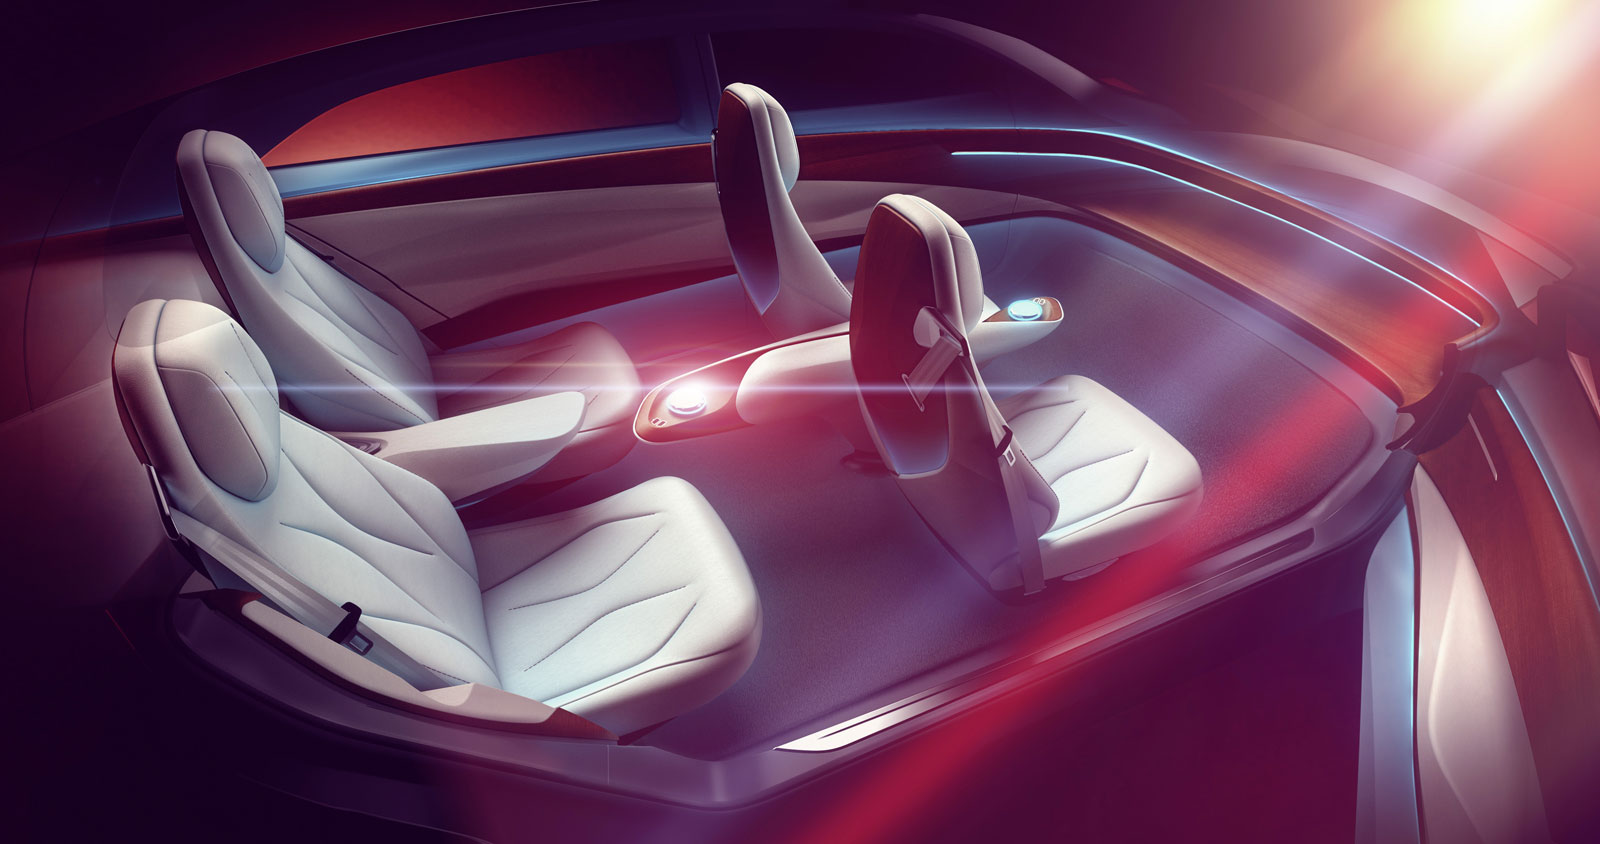 Volkswagen I.D. Vizzion Concept Interior Design Sketch Render